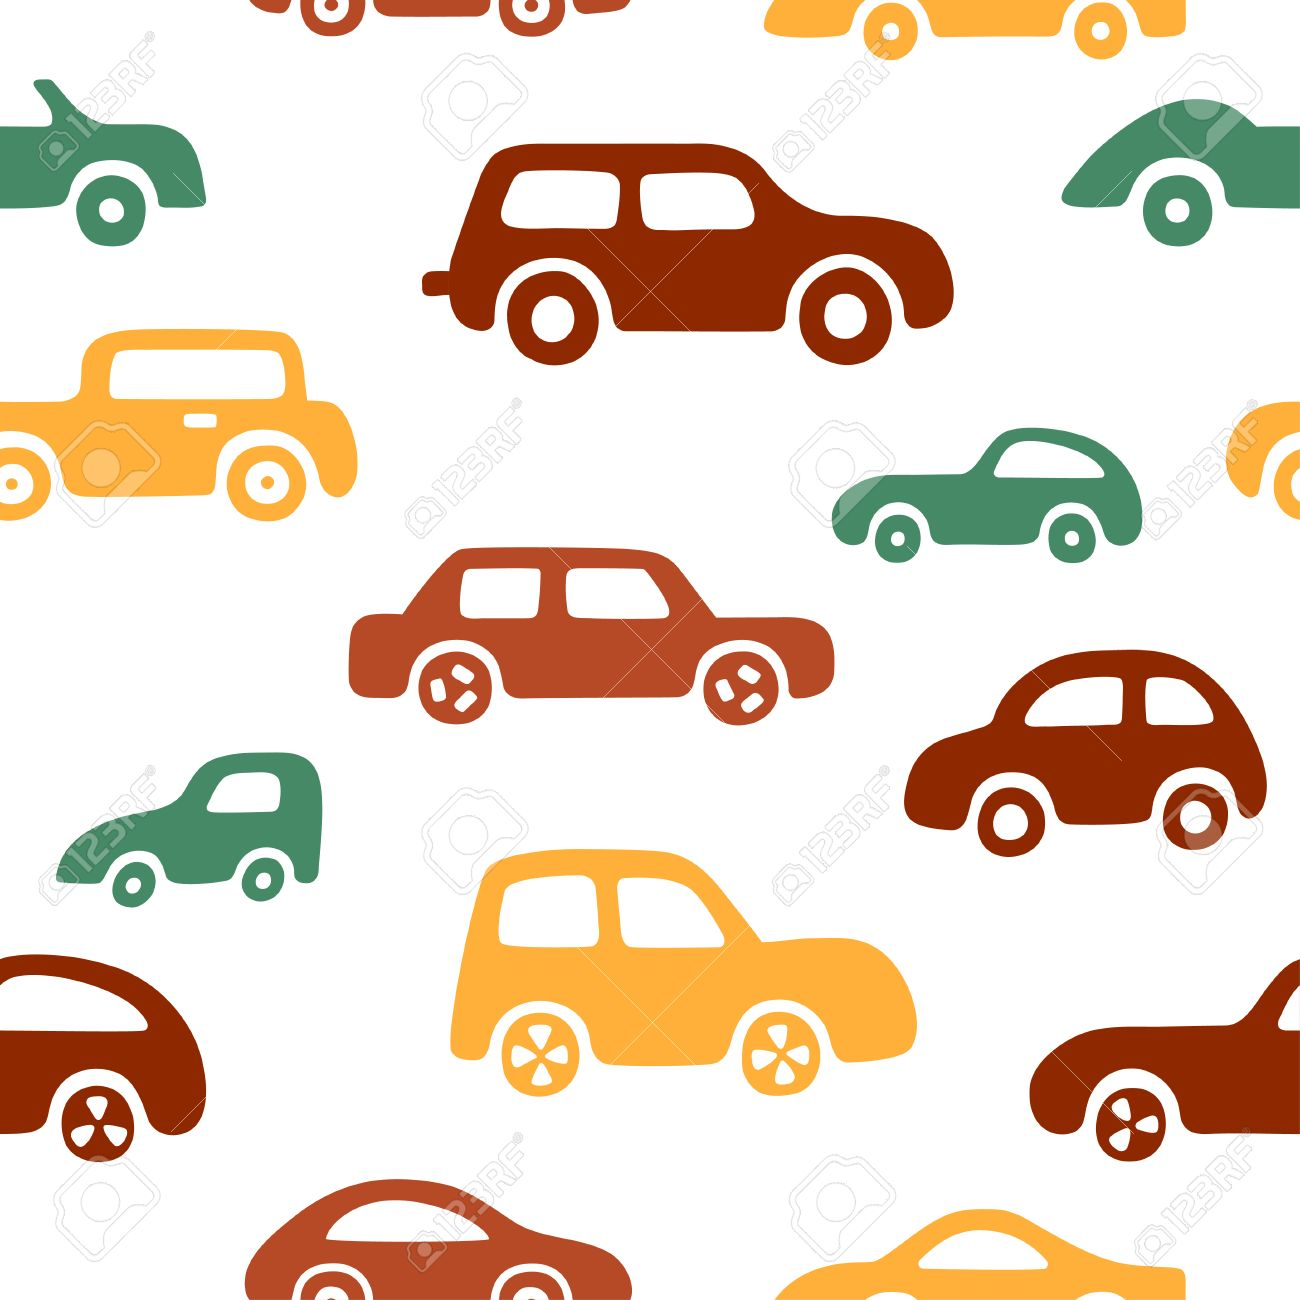 Baby boy background wallpaper baby boy background images baby boy - Doodle Cars Background Seamless Baby Boy Pattern In Texture For Wallpaper Fills